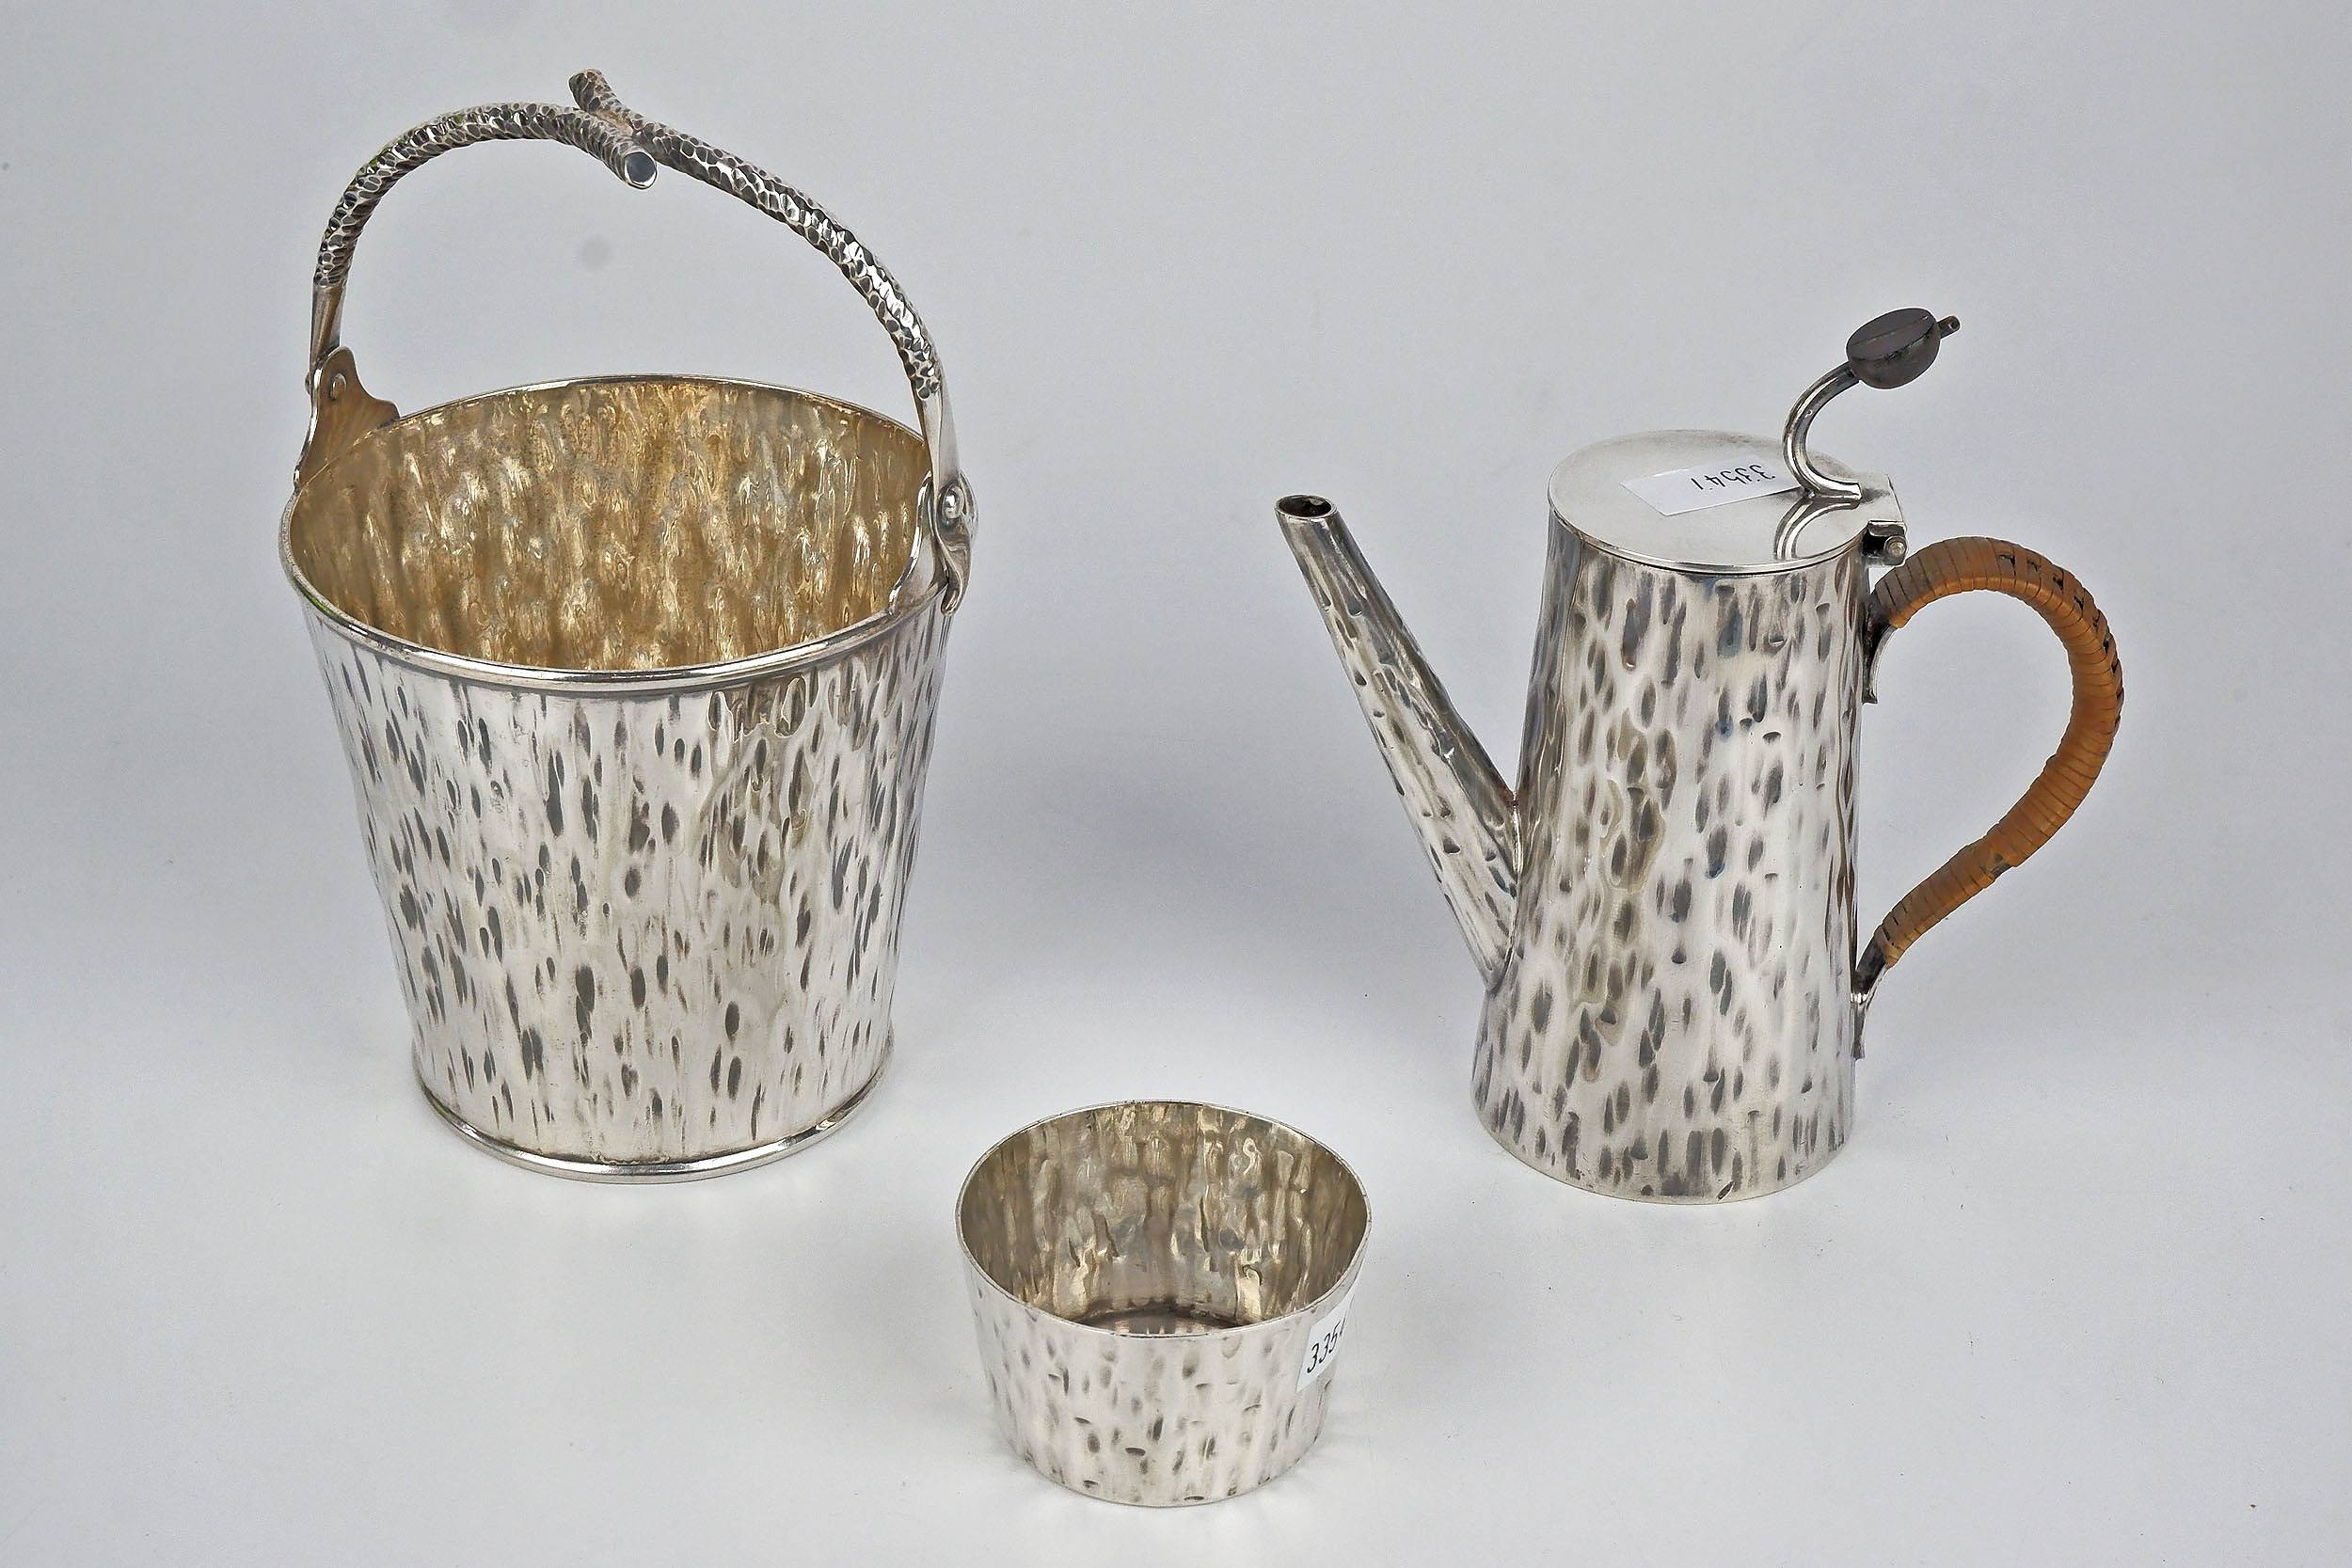 'English Aesthetic Movement Silver Plated and Cane Handled Chocolate Pot, Sugar Bowl and Sweets Pail, Hukin and Heath'